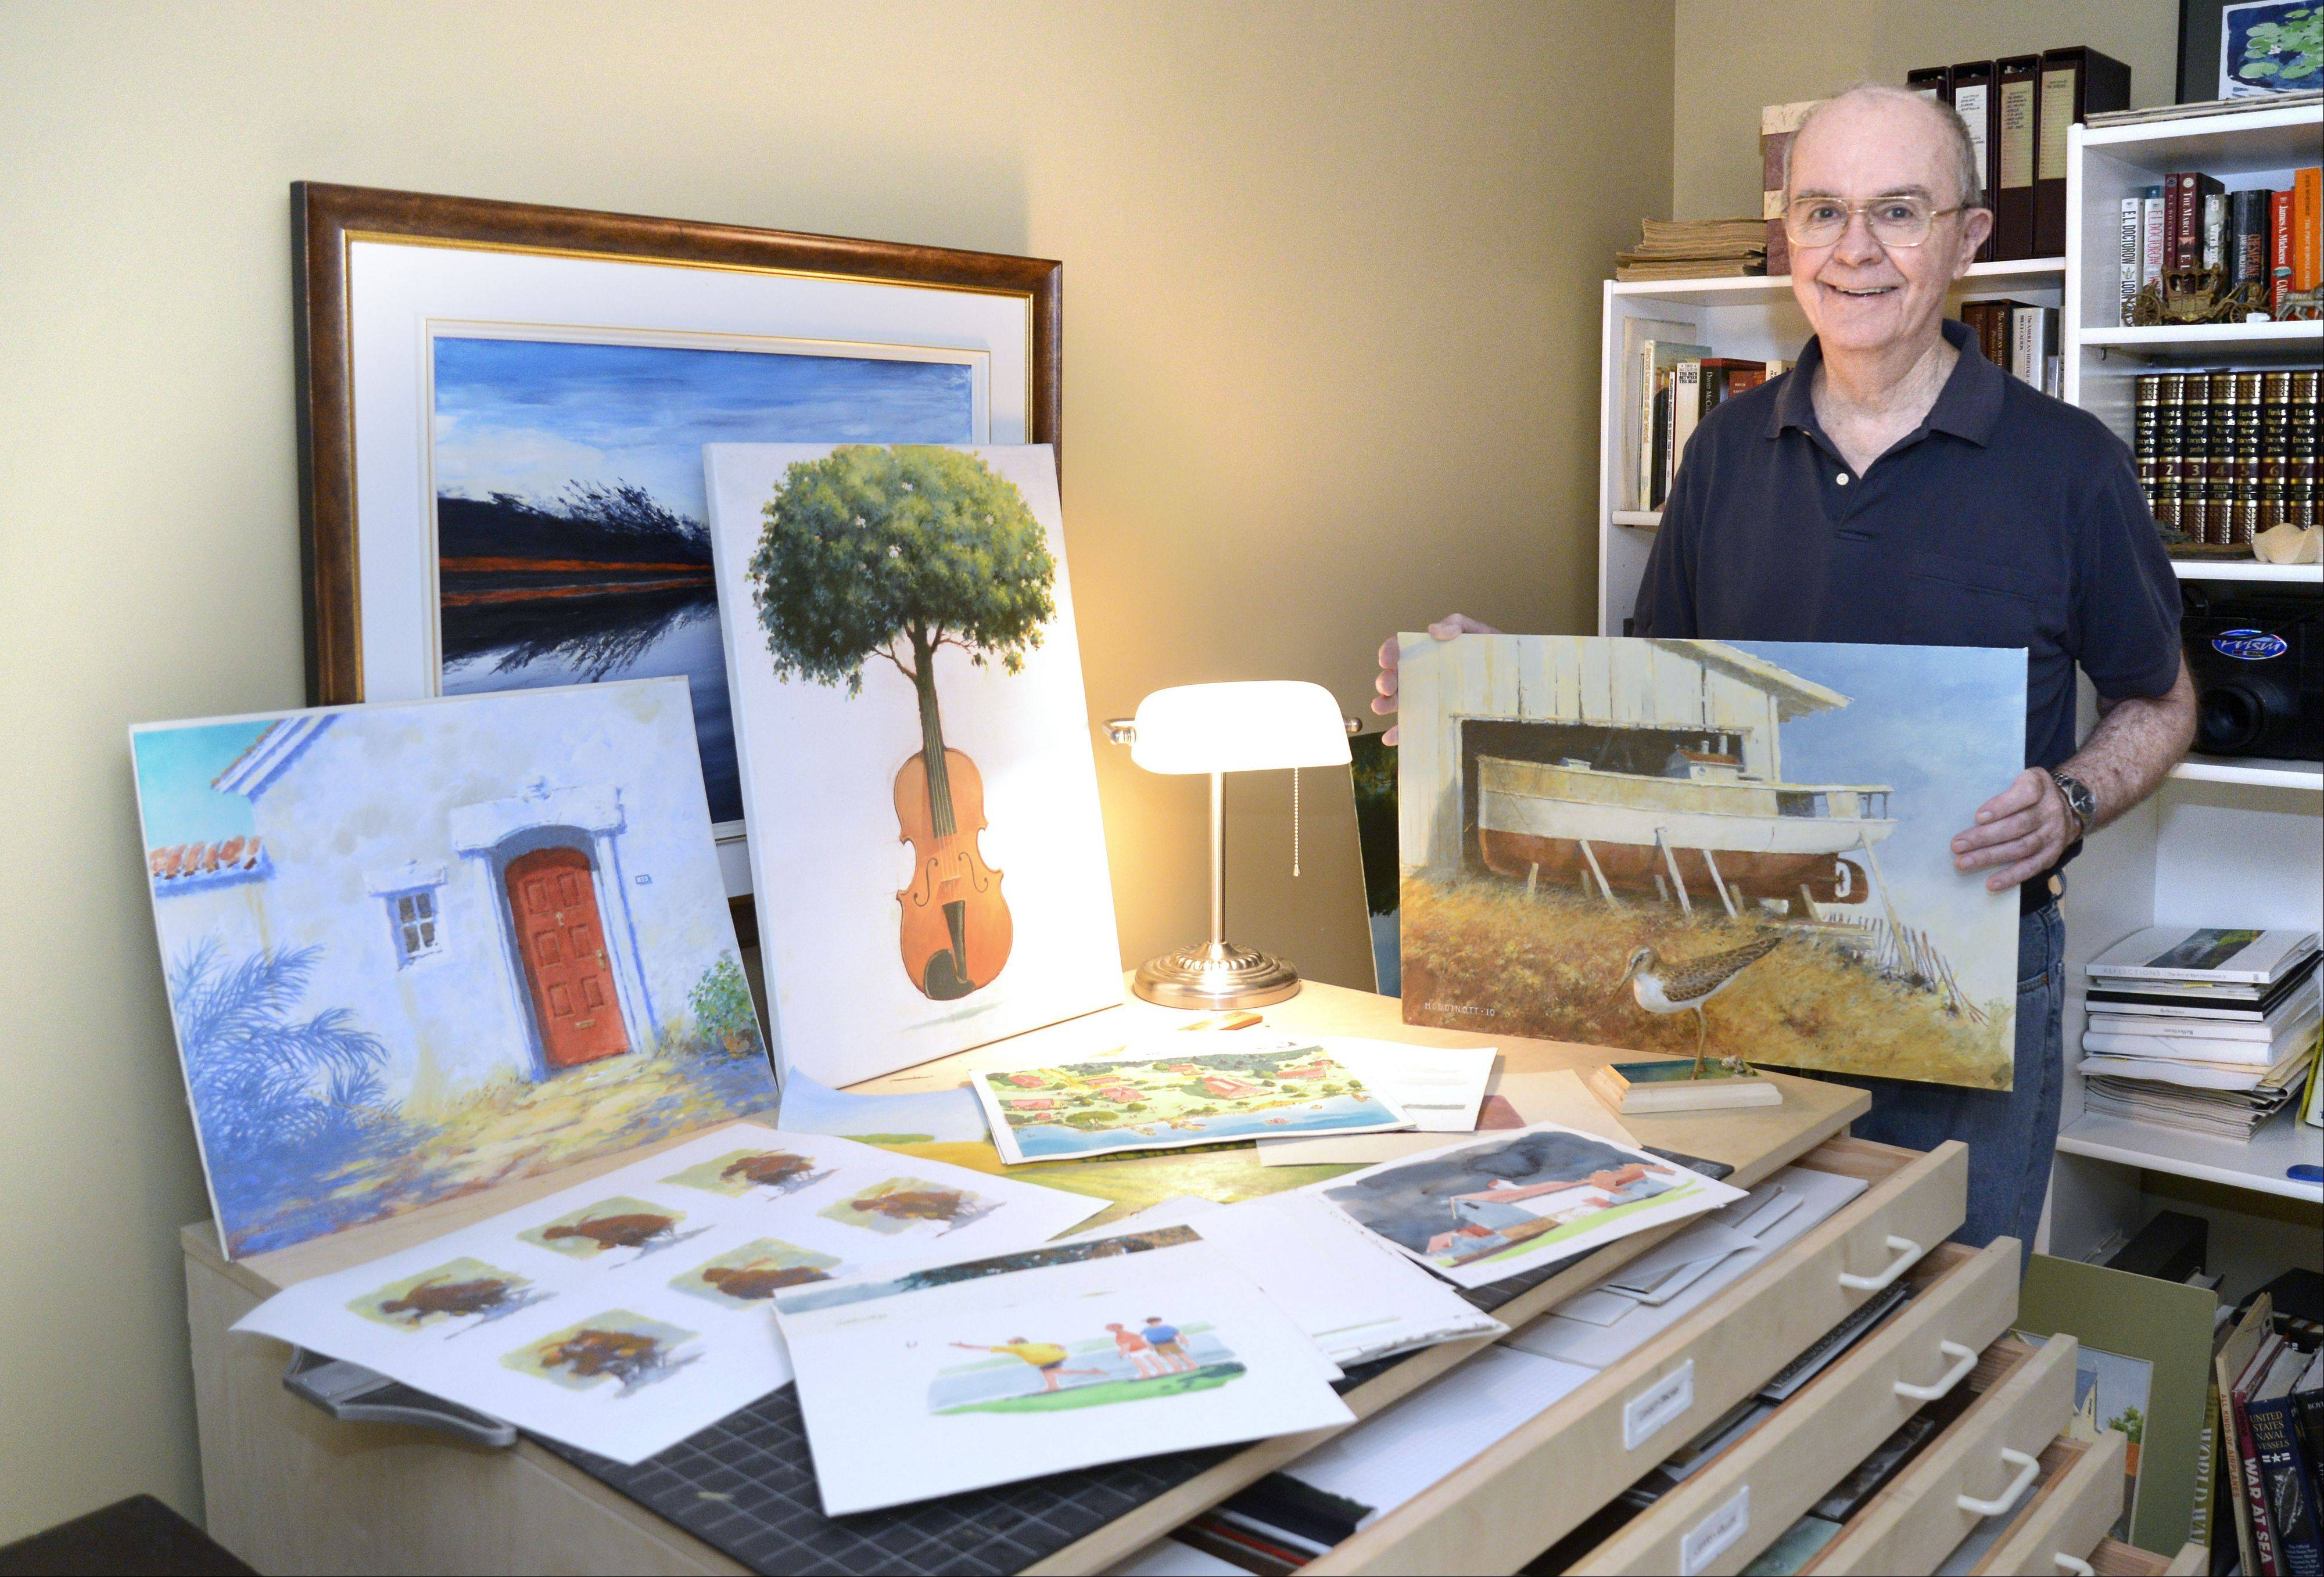 Bert Hoddinott Jr., 80, of St. Charles is a former graphic designer and has painted, drawn and crafted wooden carvings since he was a child. Though he has never shown his extensive collection of work in a gallery, he recently published a book of his work.